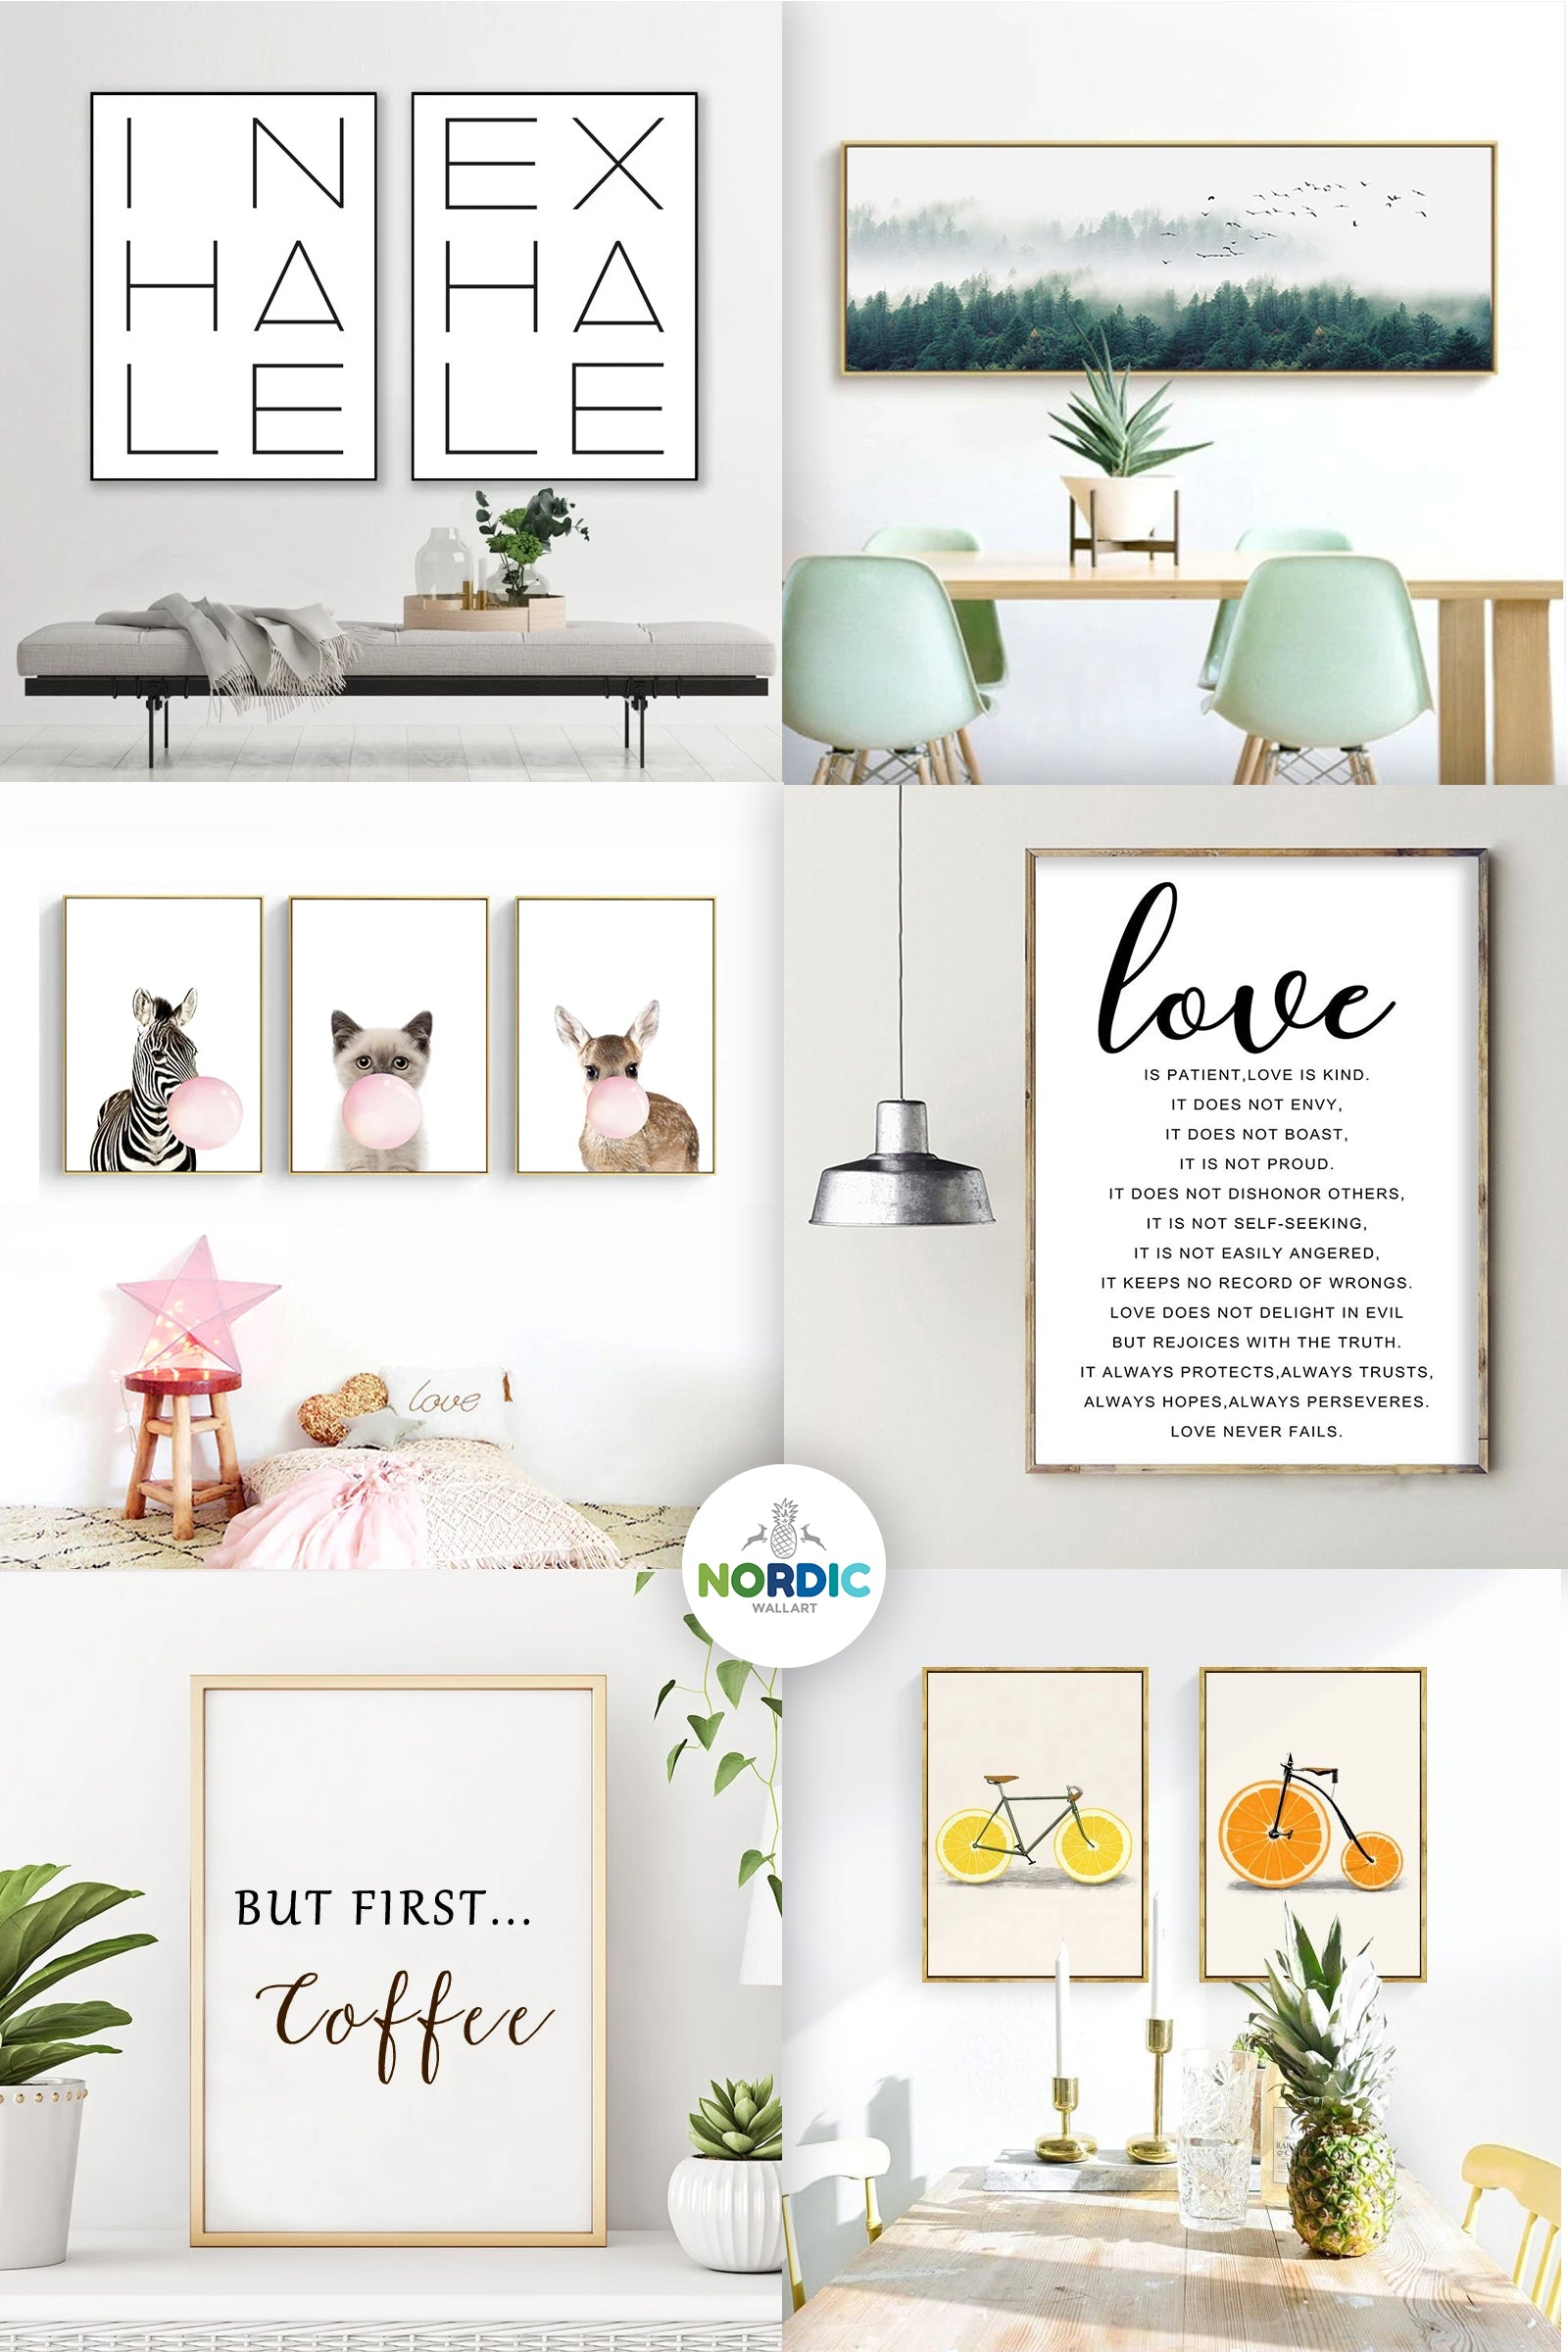 Choose Nordic Wall Art to fill your environment with happiness, inspiration, calm and positivity